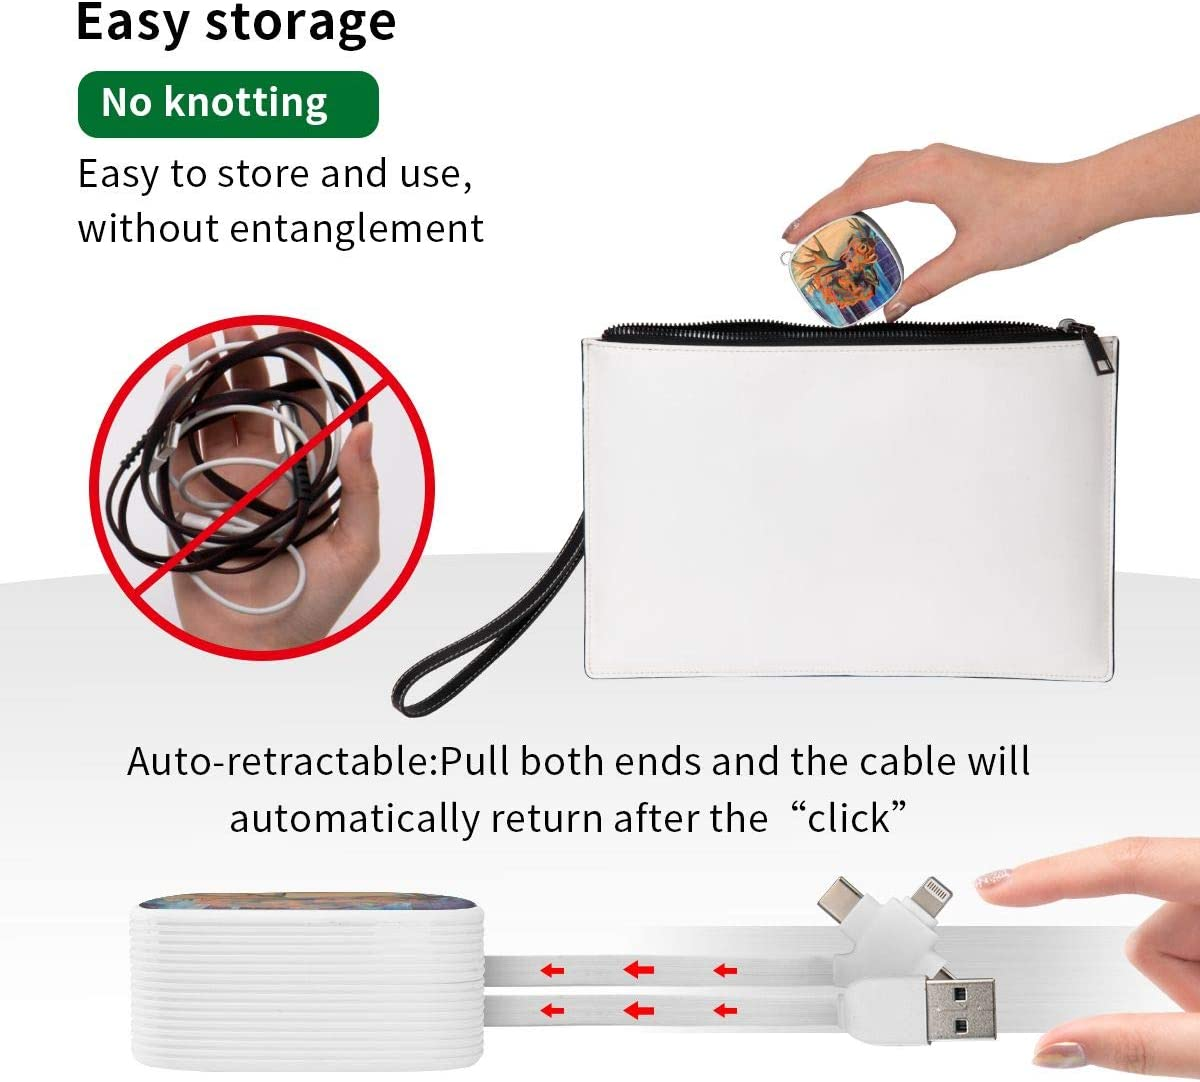 Polar Elk Square Three-in-One Data Cable A Necessary Data Cable for Home and Car Travel